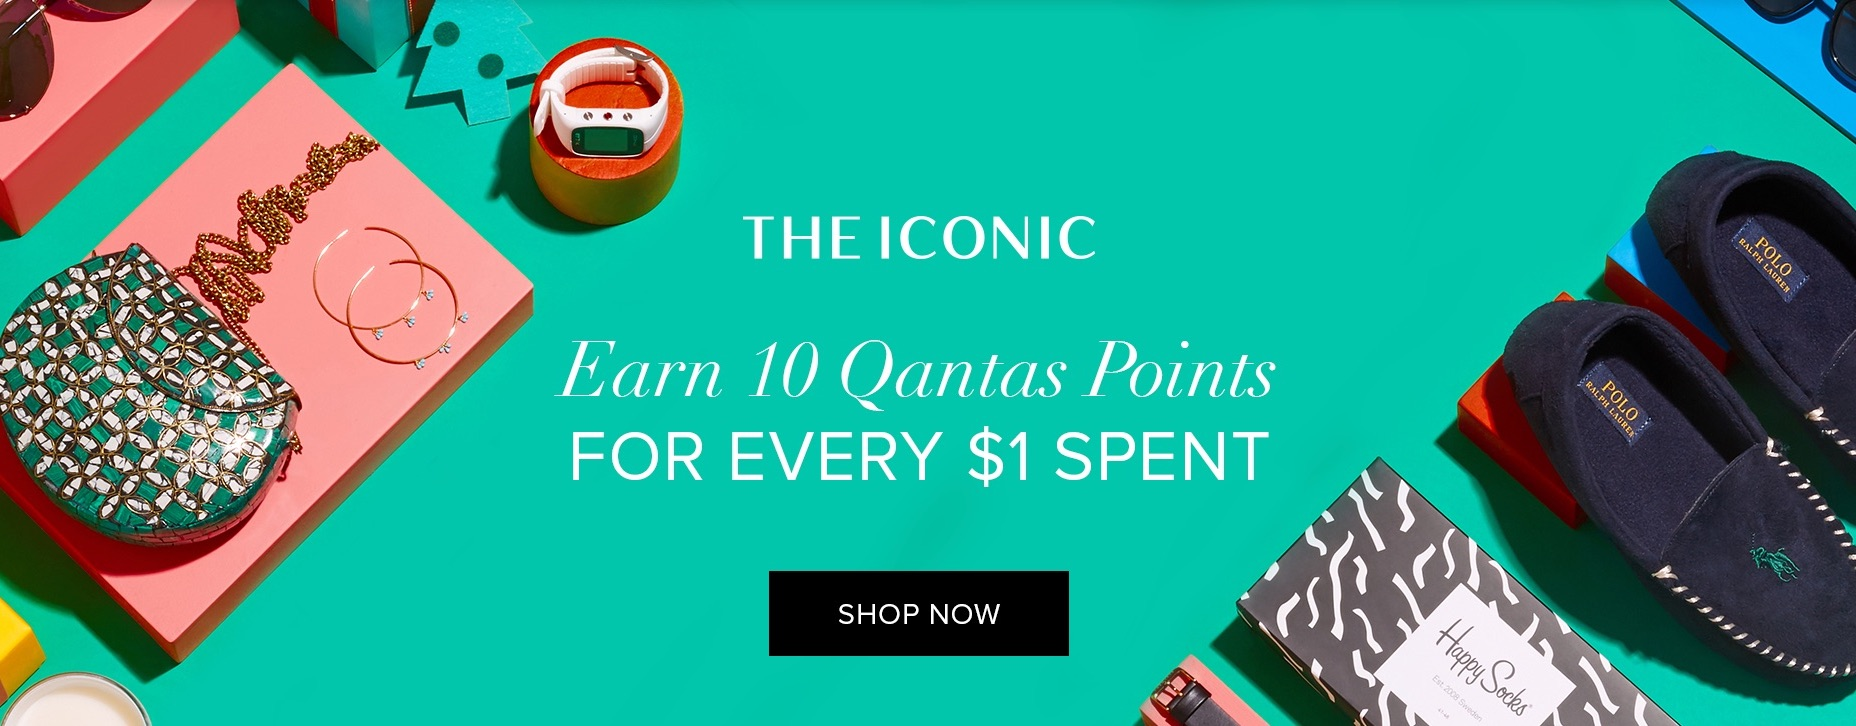 Qantas_Points_Online_Mall-2